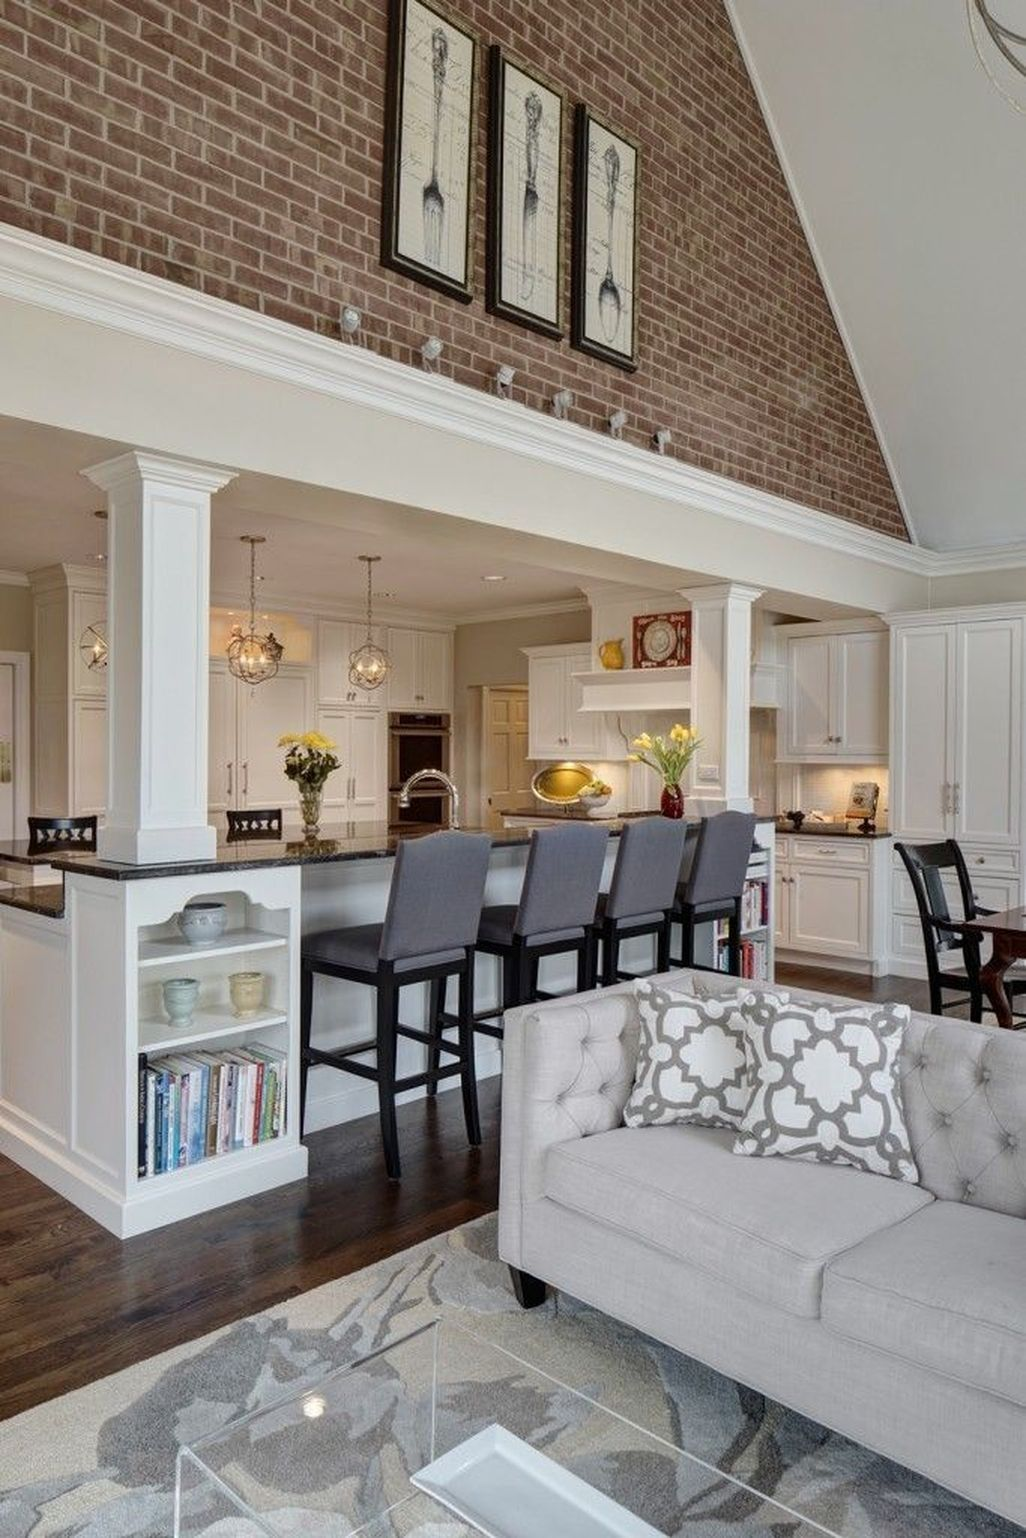 Kitchen Family Room Designs: 49 Cozy Open Kitchen Designs Ideas With Living Room In